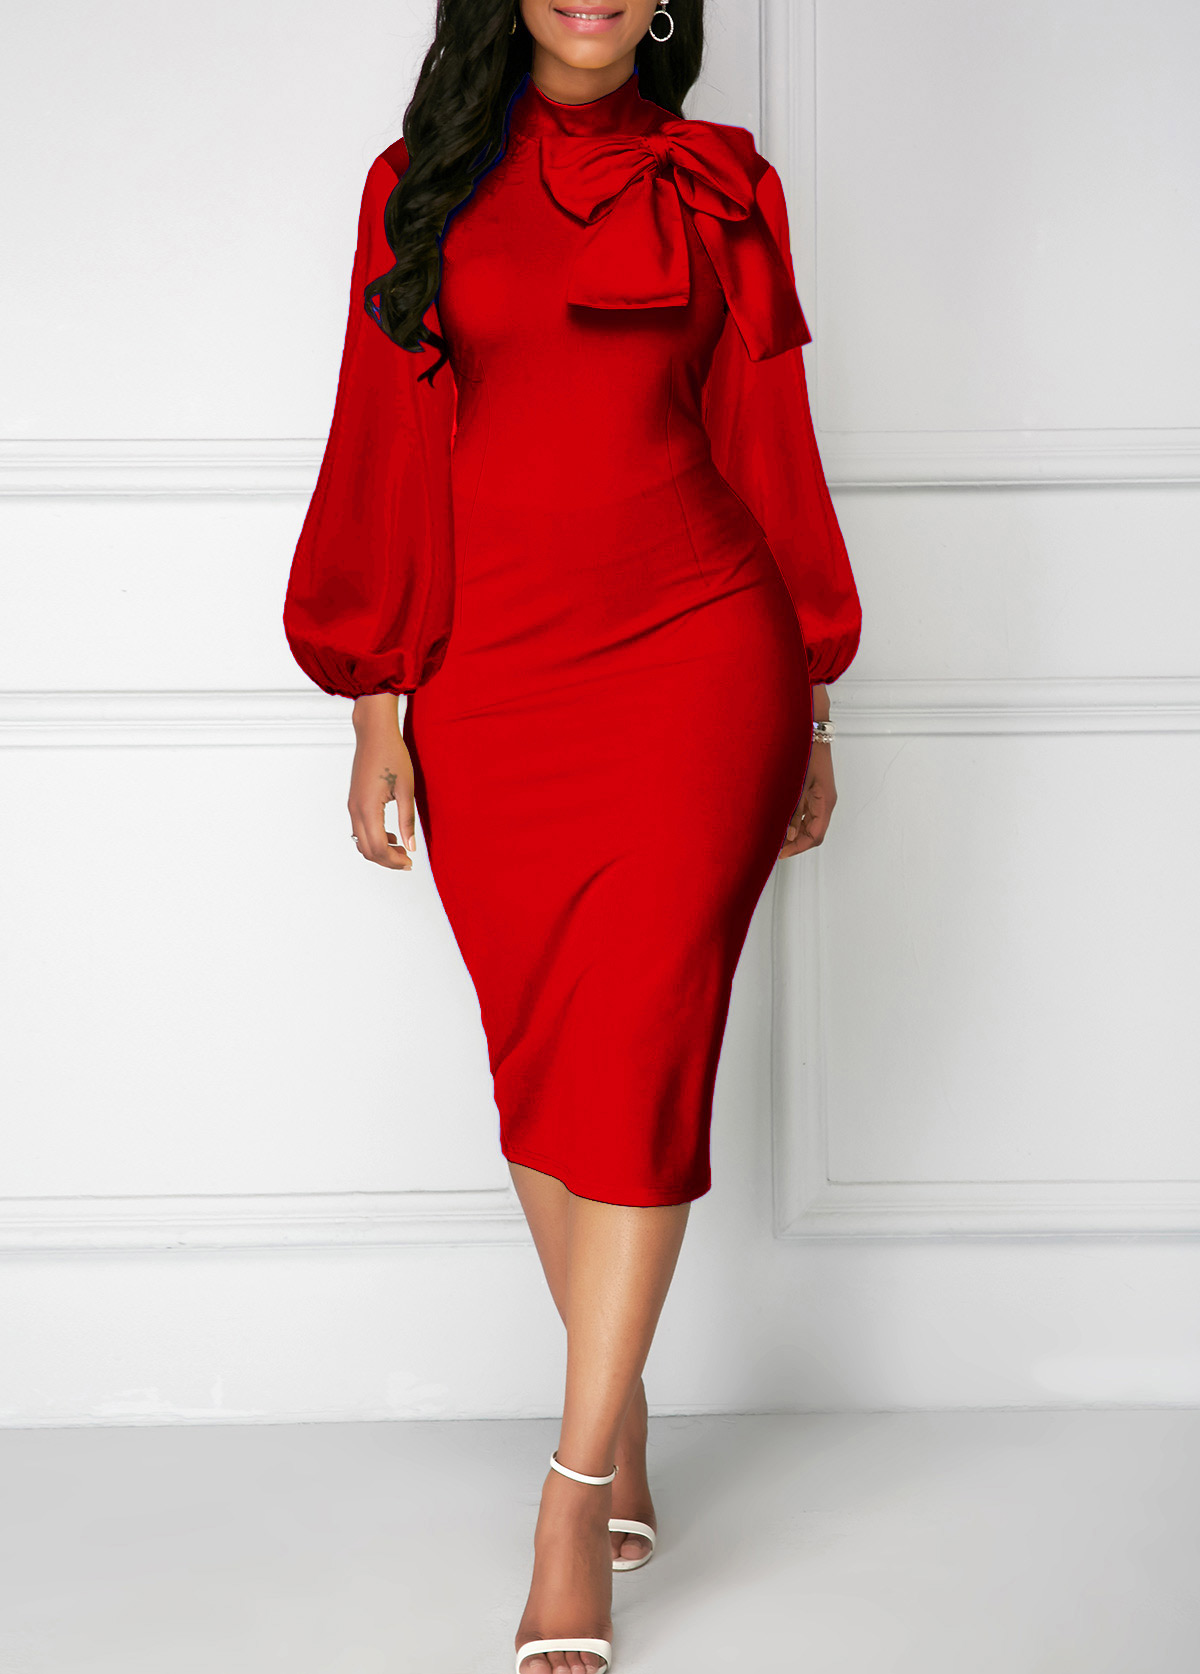 Bowknot Neck Red Lantern Sleeve Sheath Dress